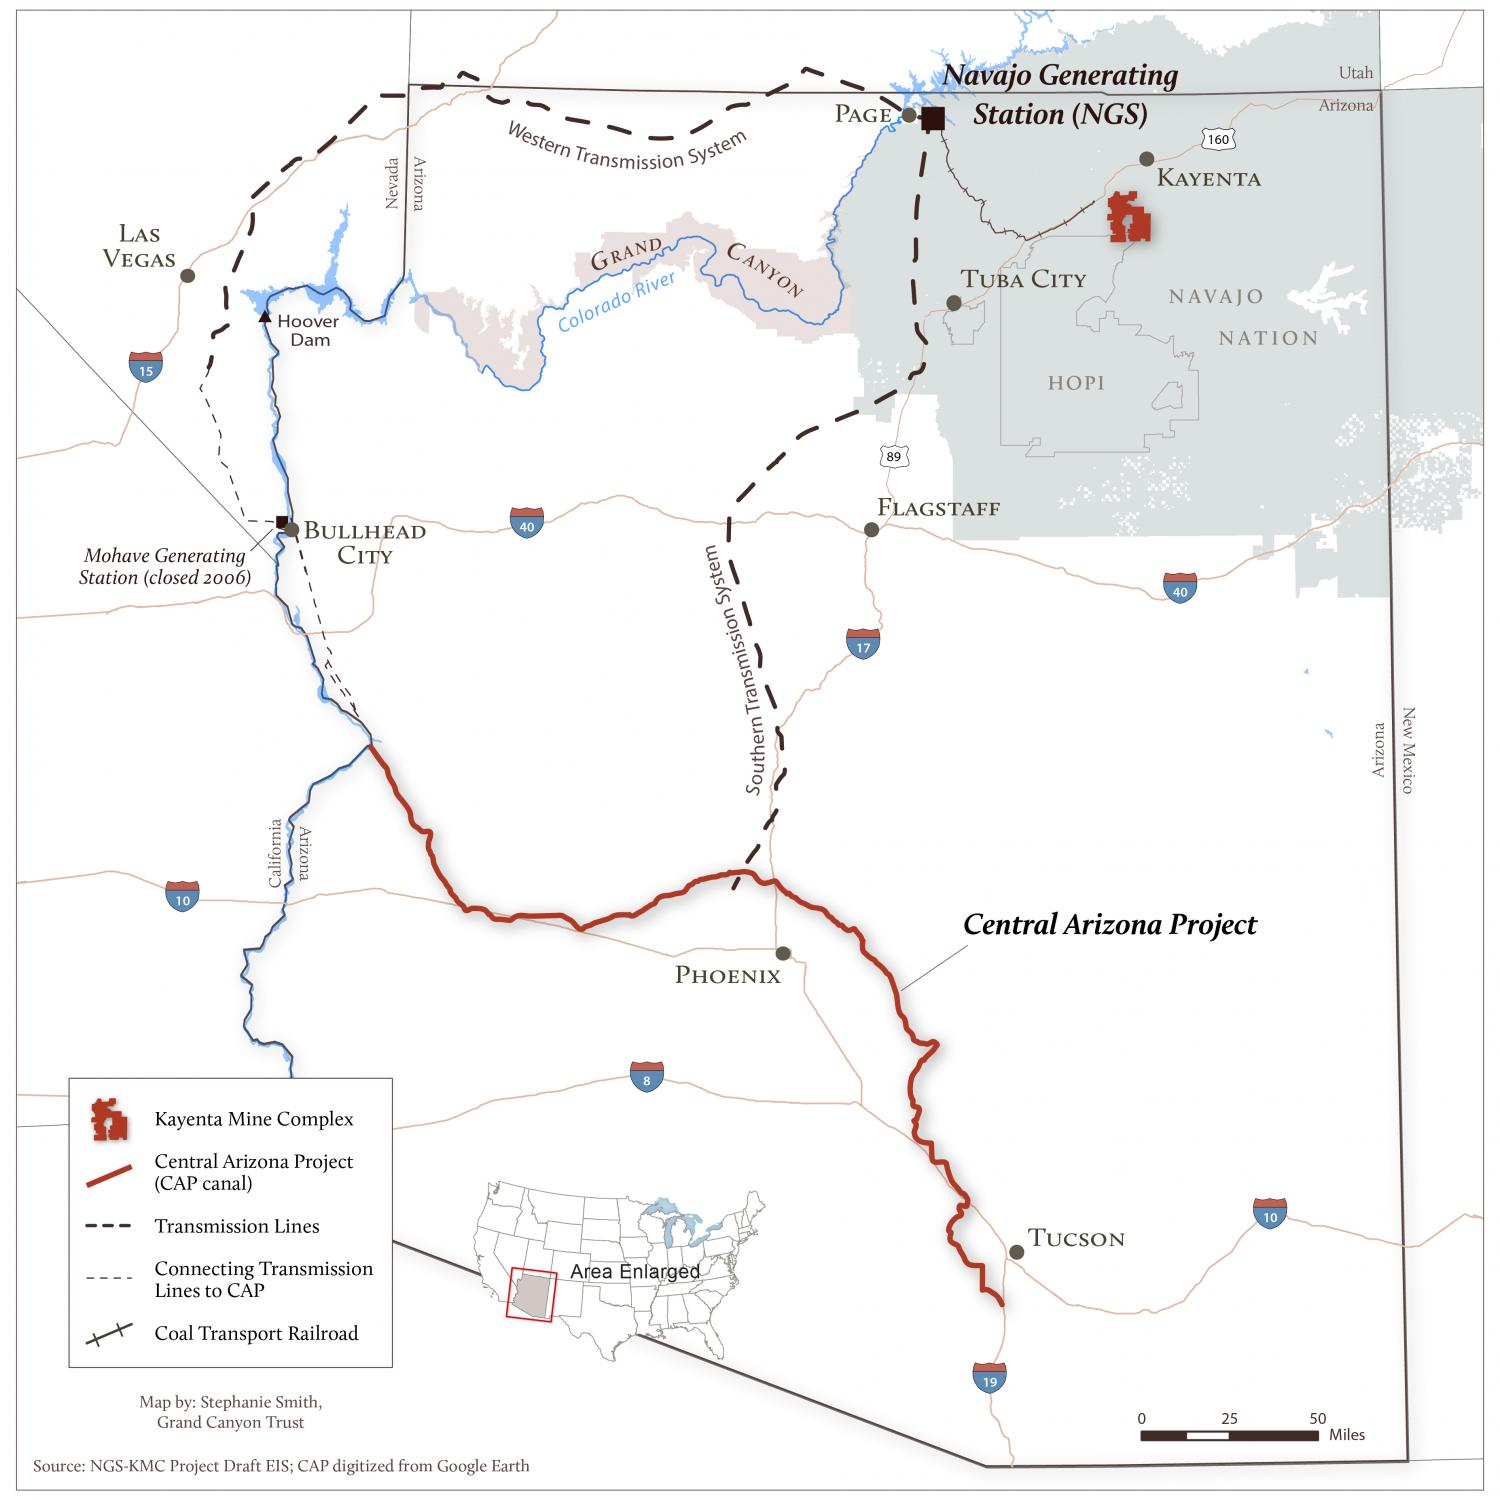 Map of Navajo Generating Station and the CAP canal